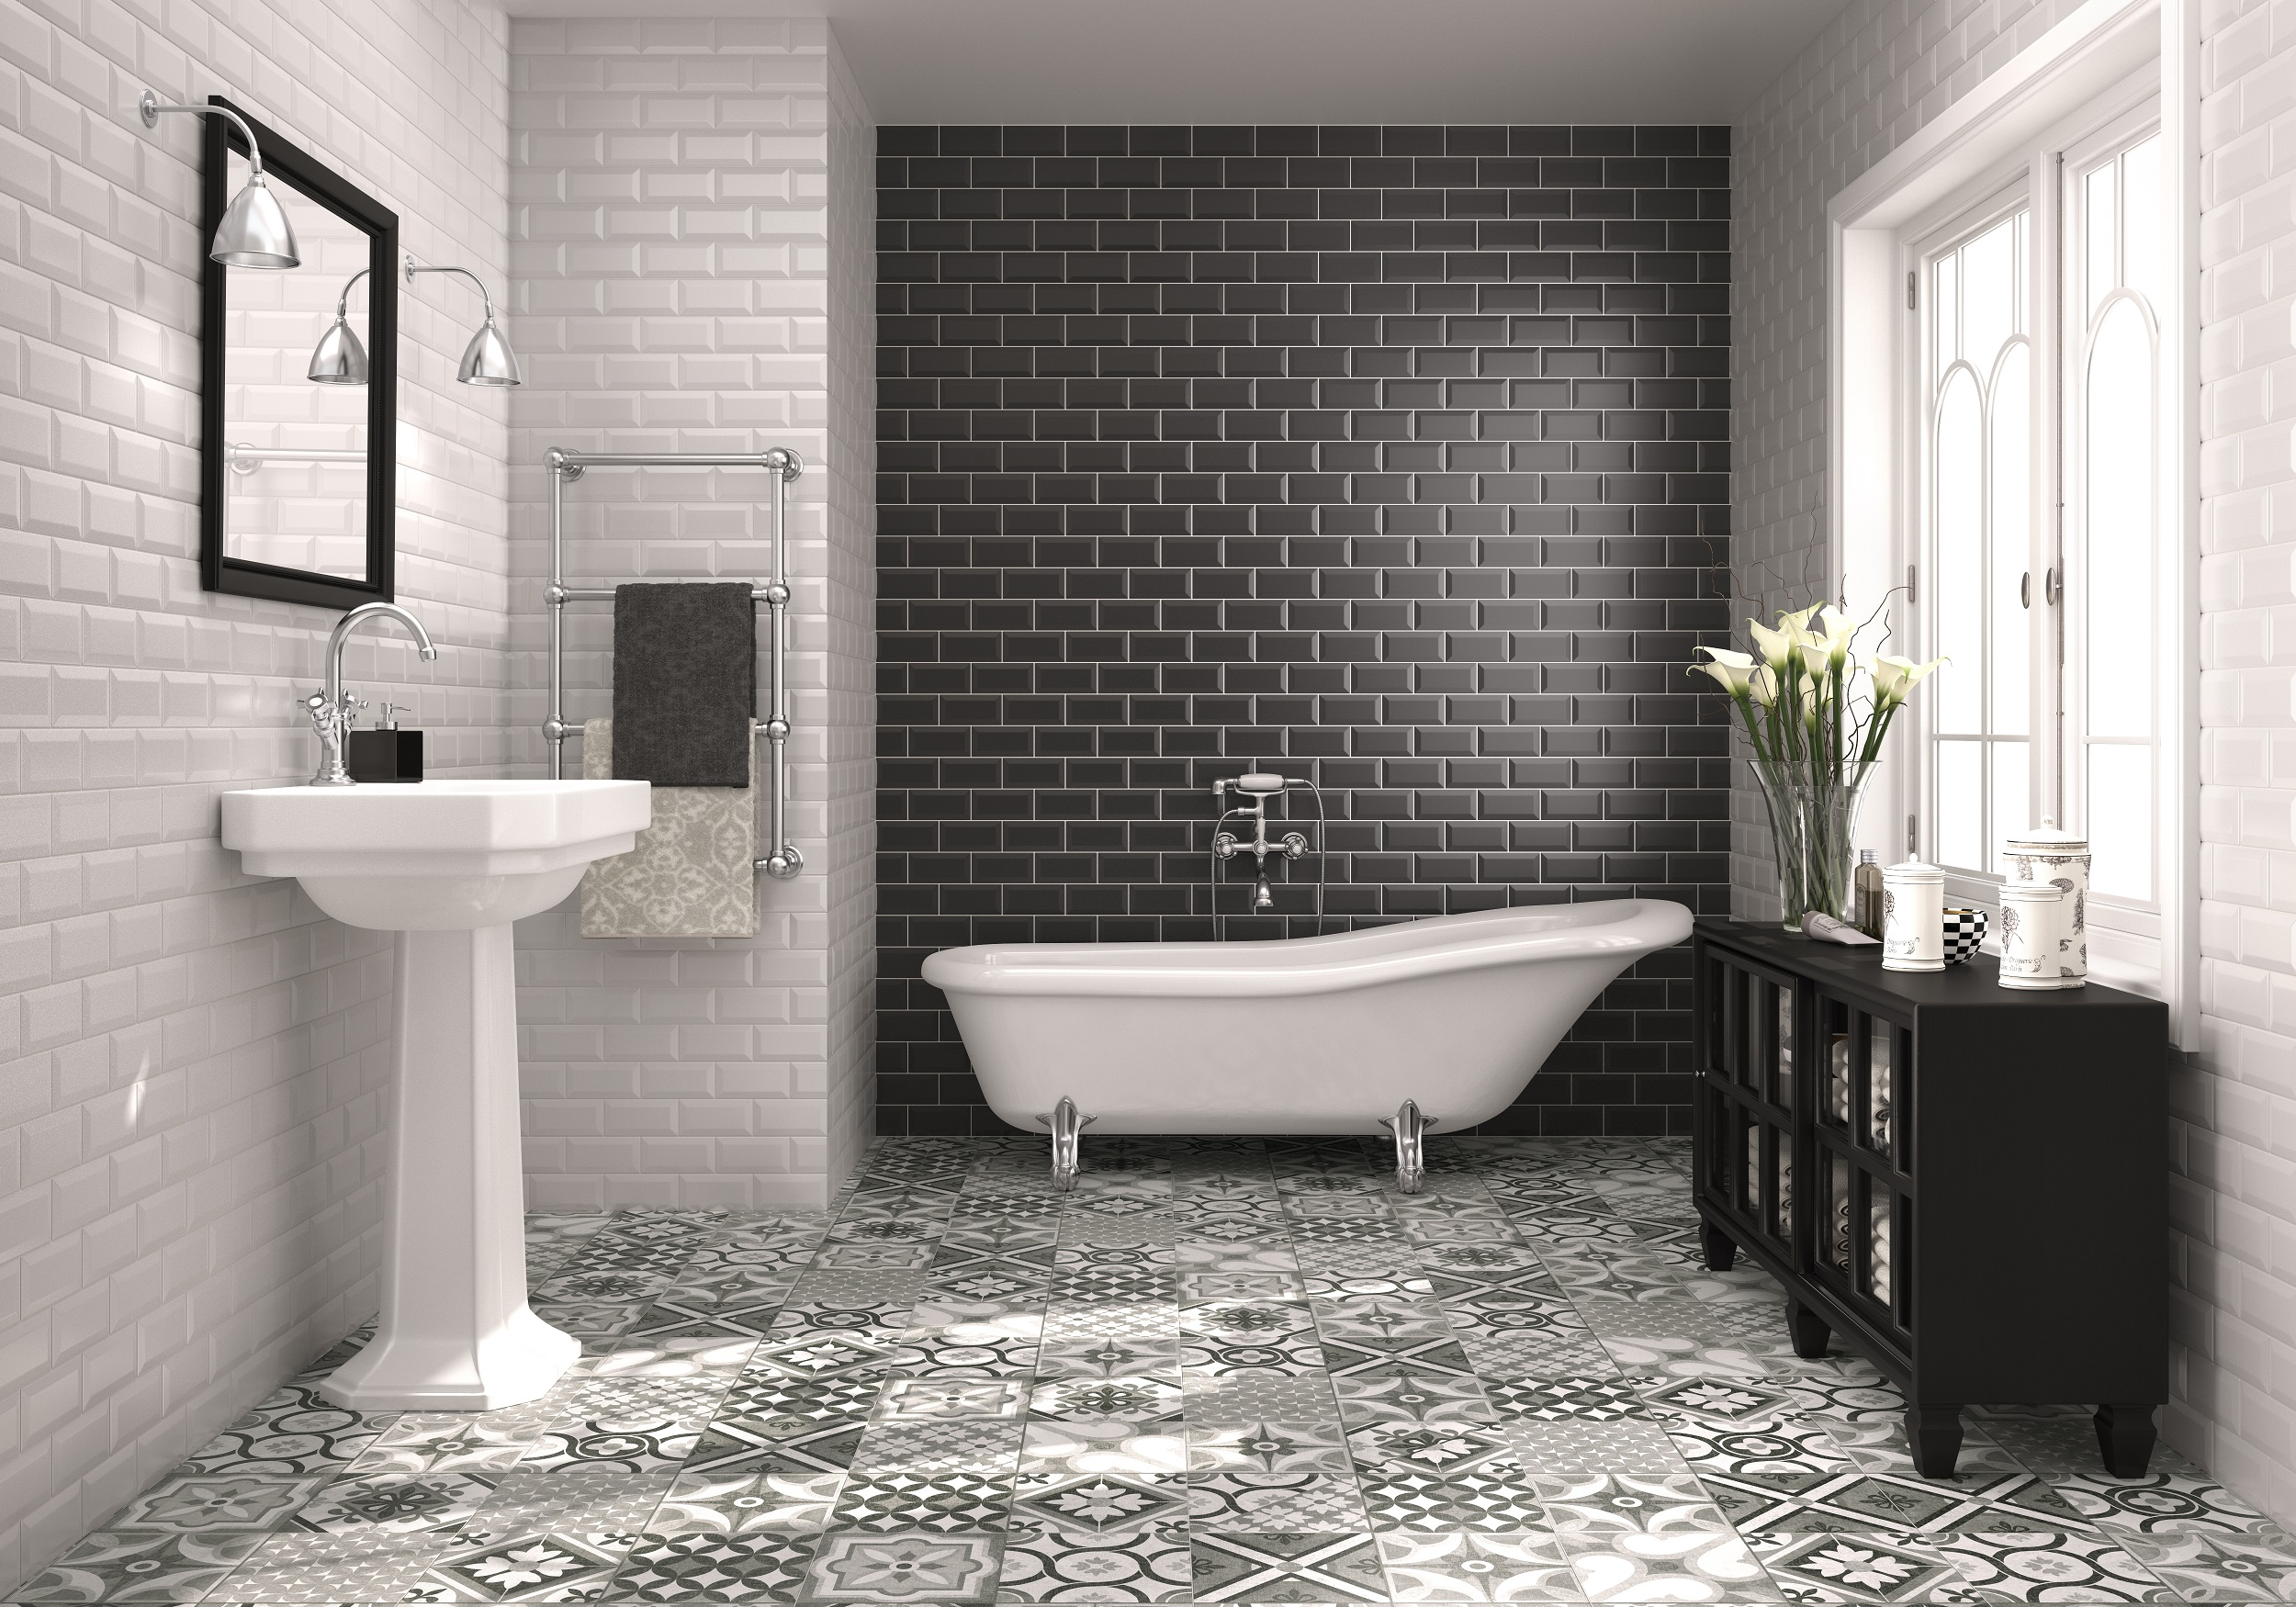 Top macro and micro bathroom trends of 2015. Top macro and micro bathroom trends of 2015   Better Living Products